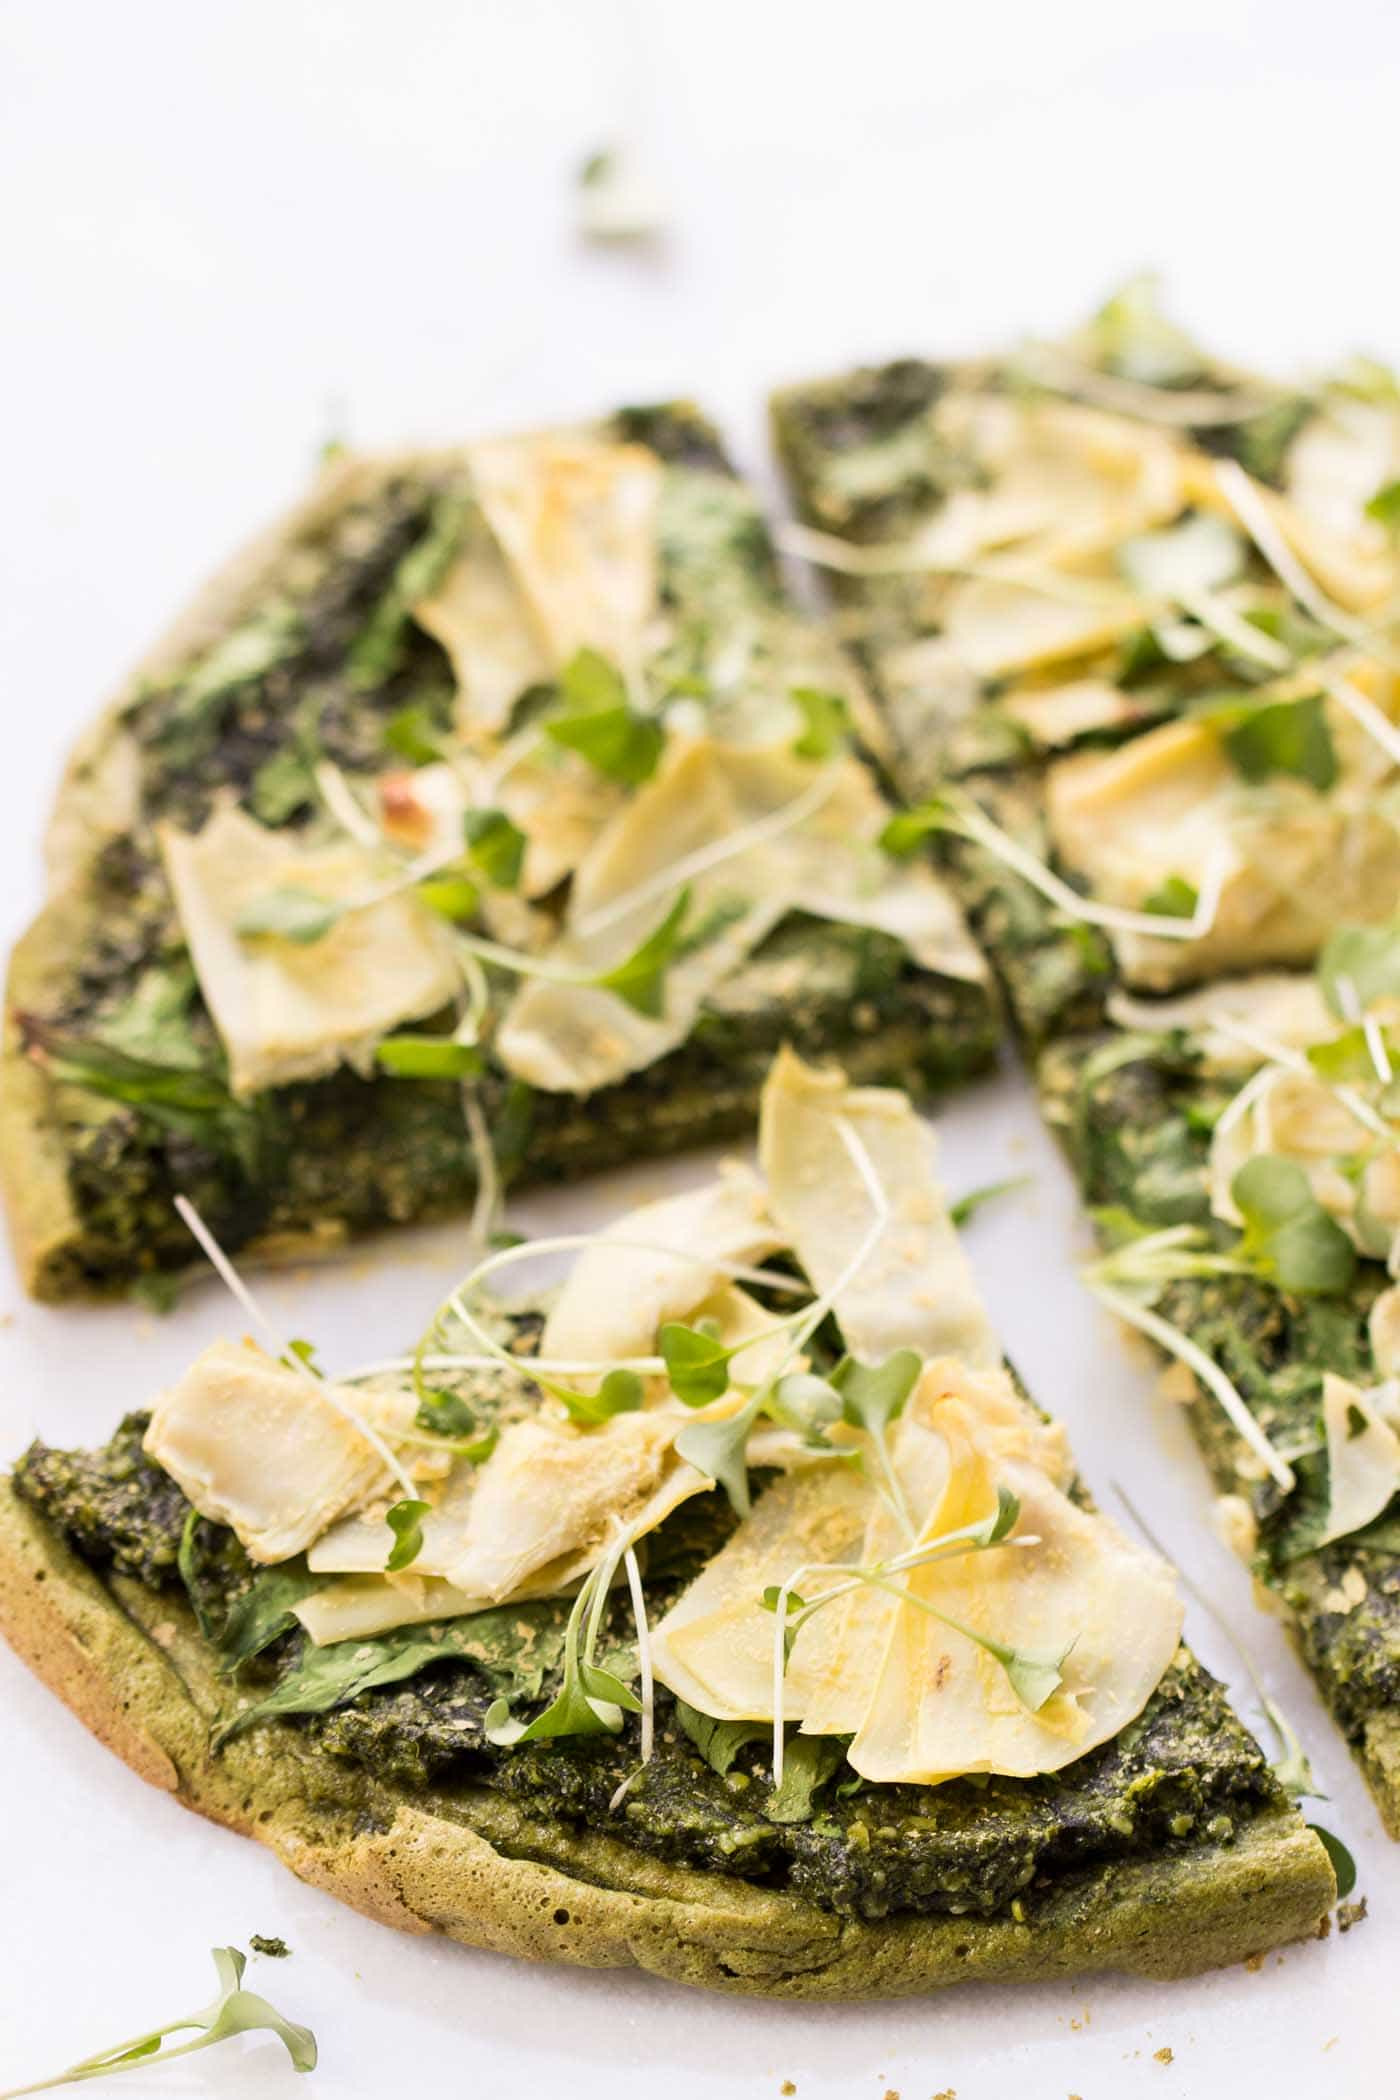 VEGAN QUINOA PIZZA...topped with pesto, spinach + artichokes, then sprinkled with nutritional yeast for a nice cheesy flavor! [gluten-free]